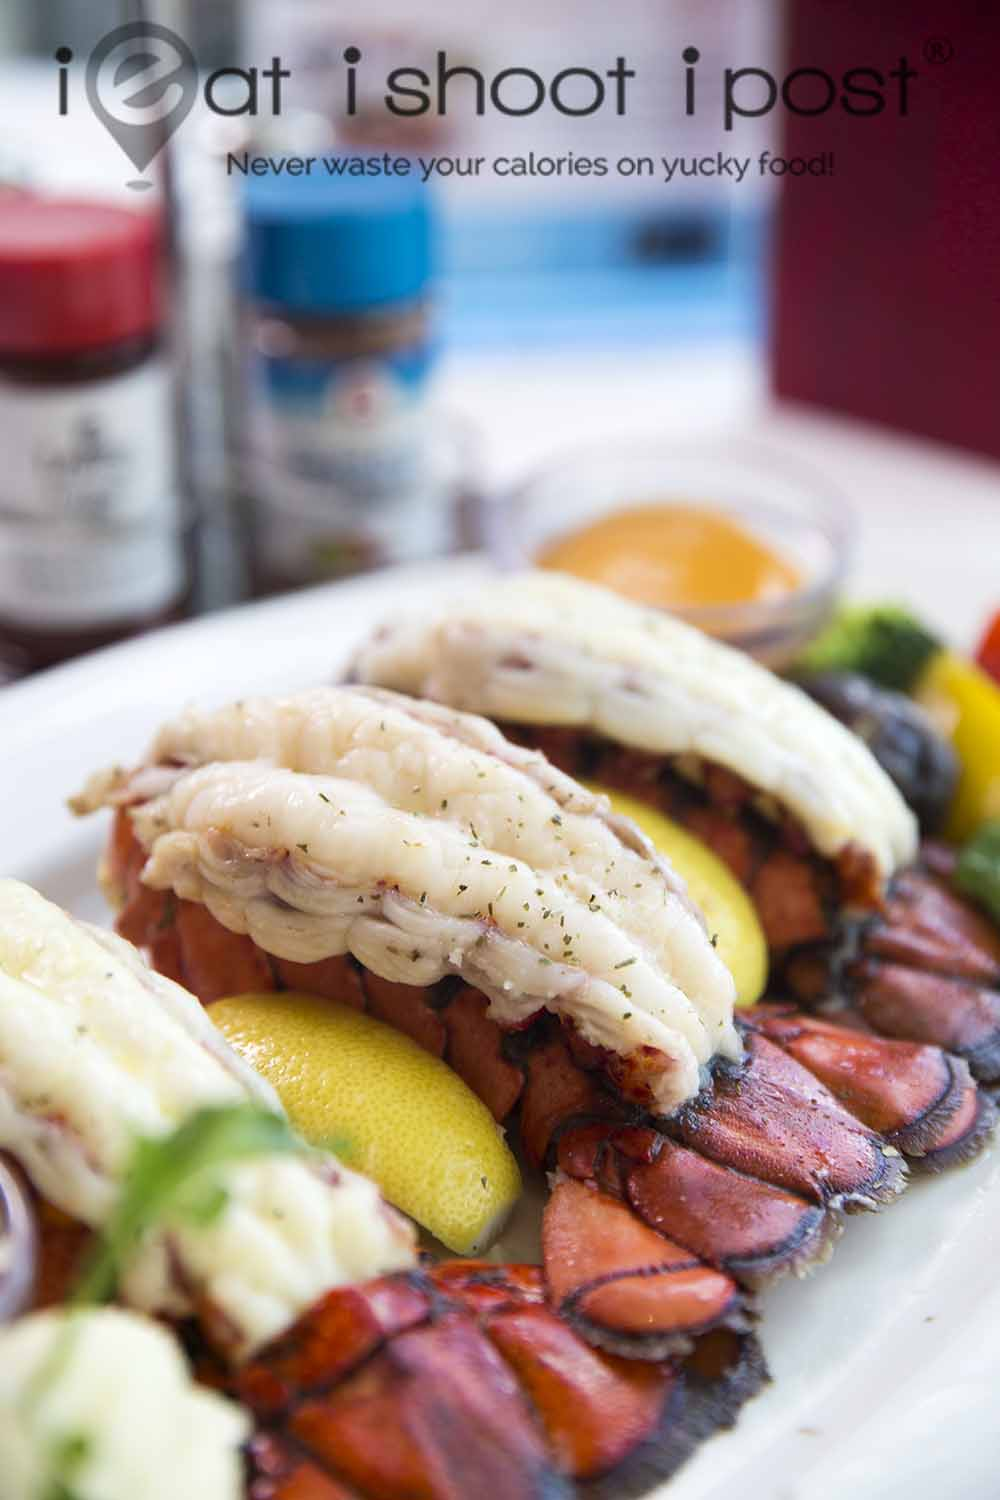 Lawry's Lobster Tail